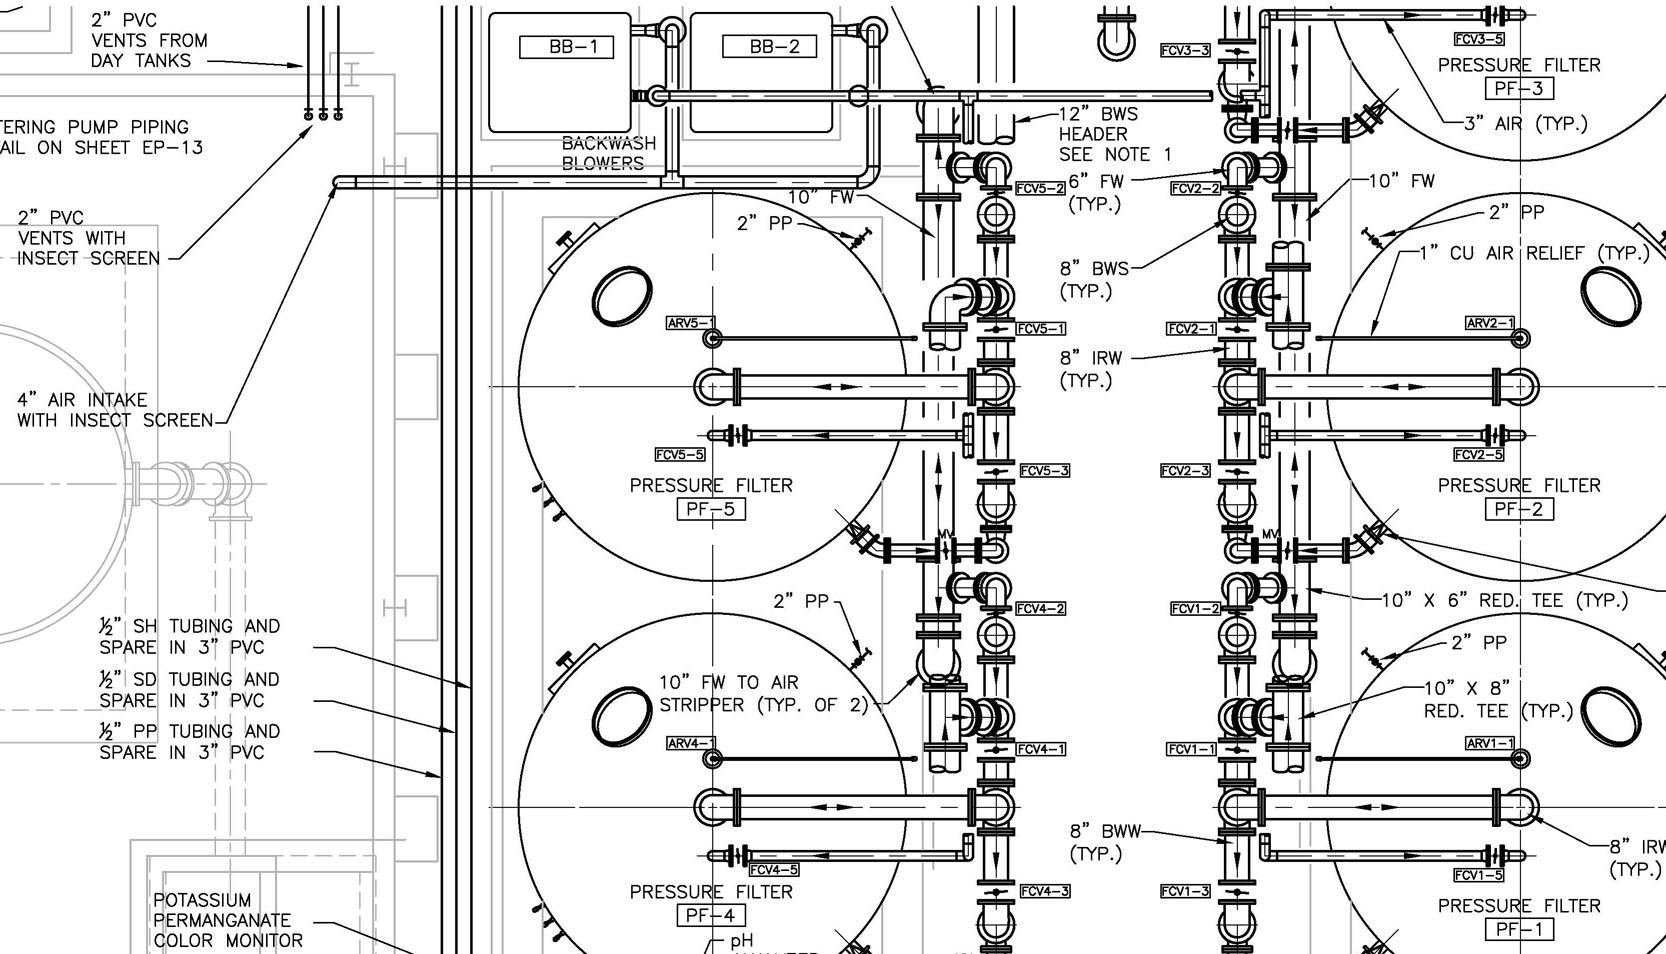 Develop And Review Equipment Piping Layout Drawings By Tubero Autocad